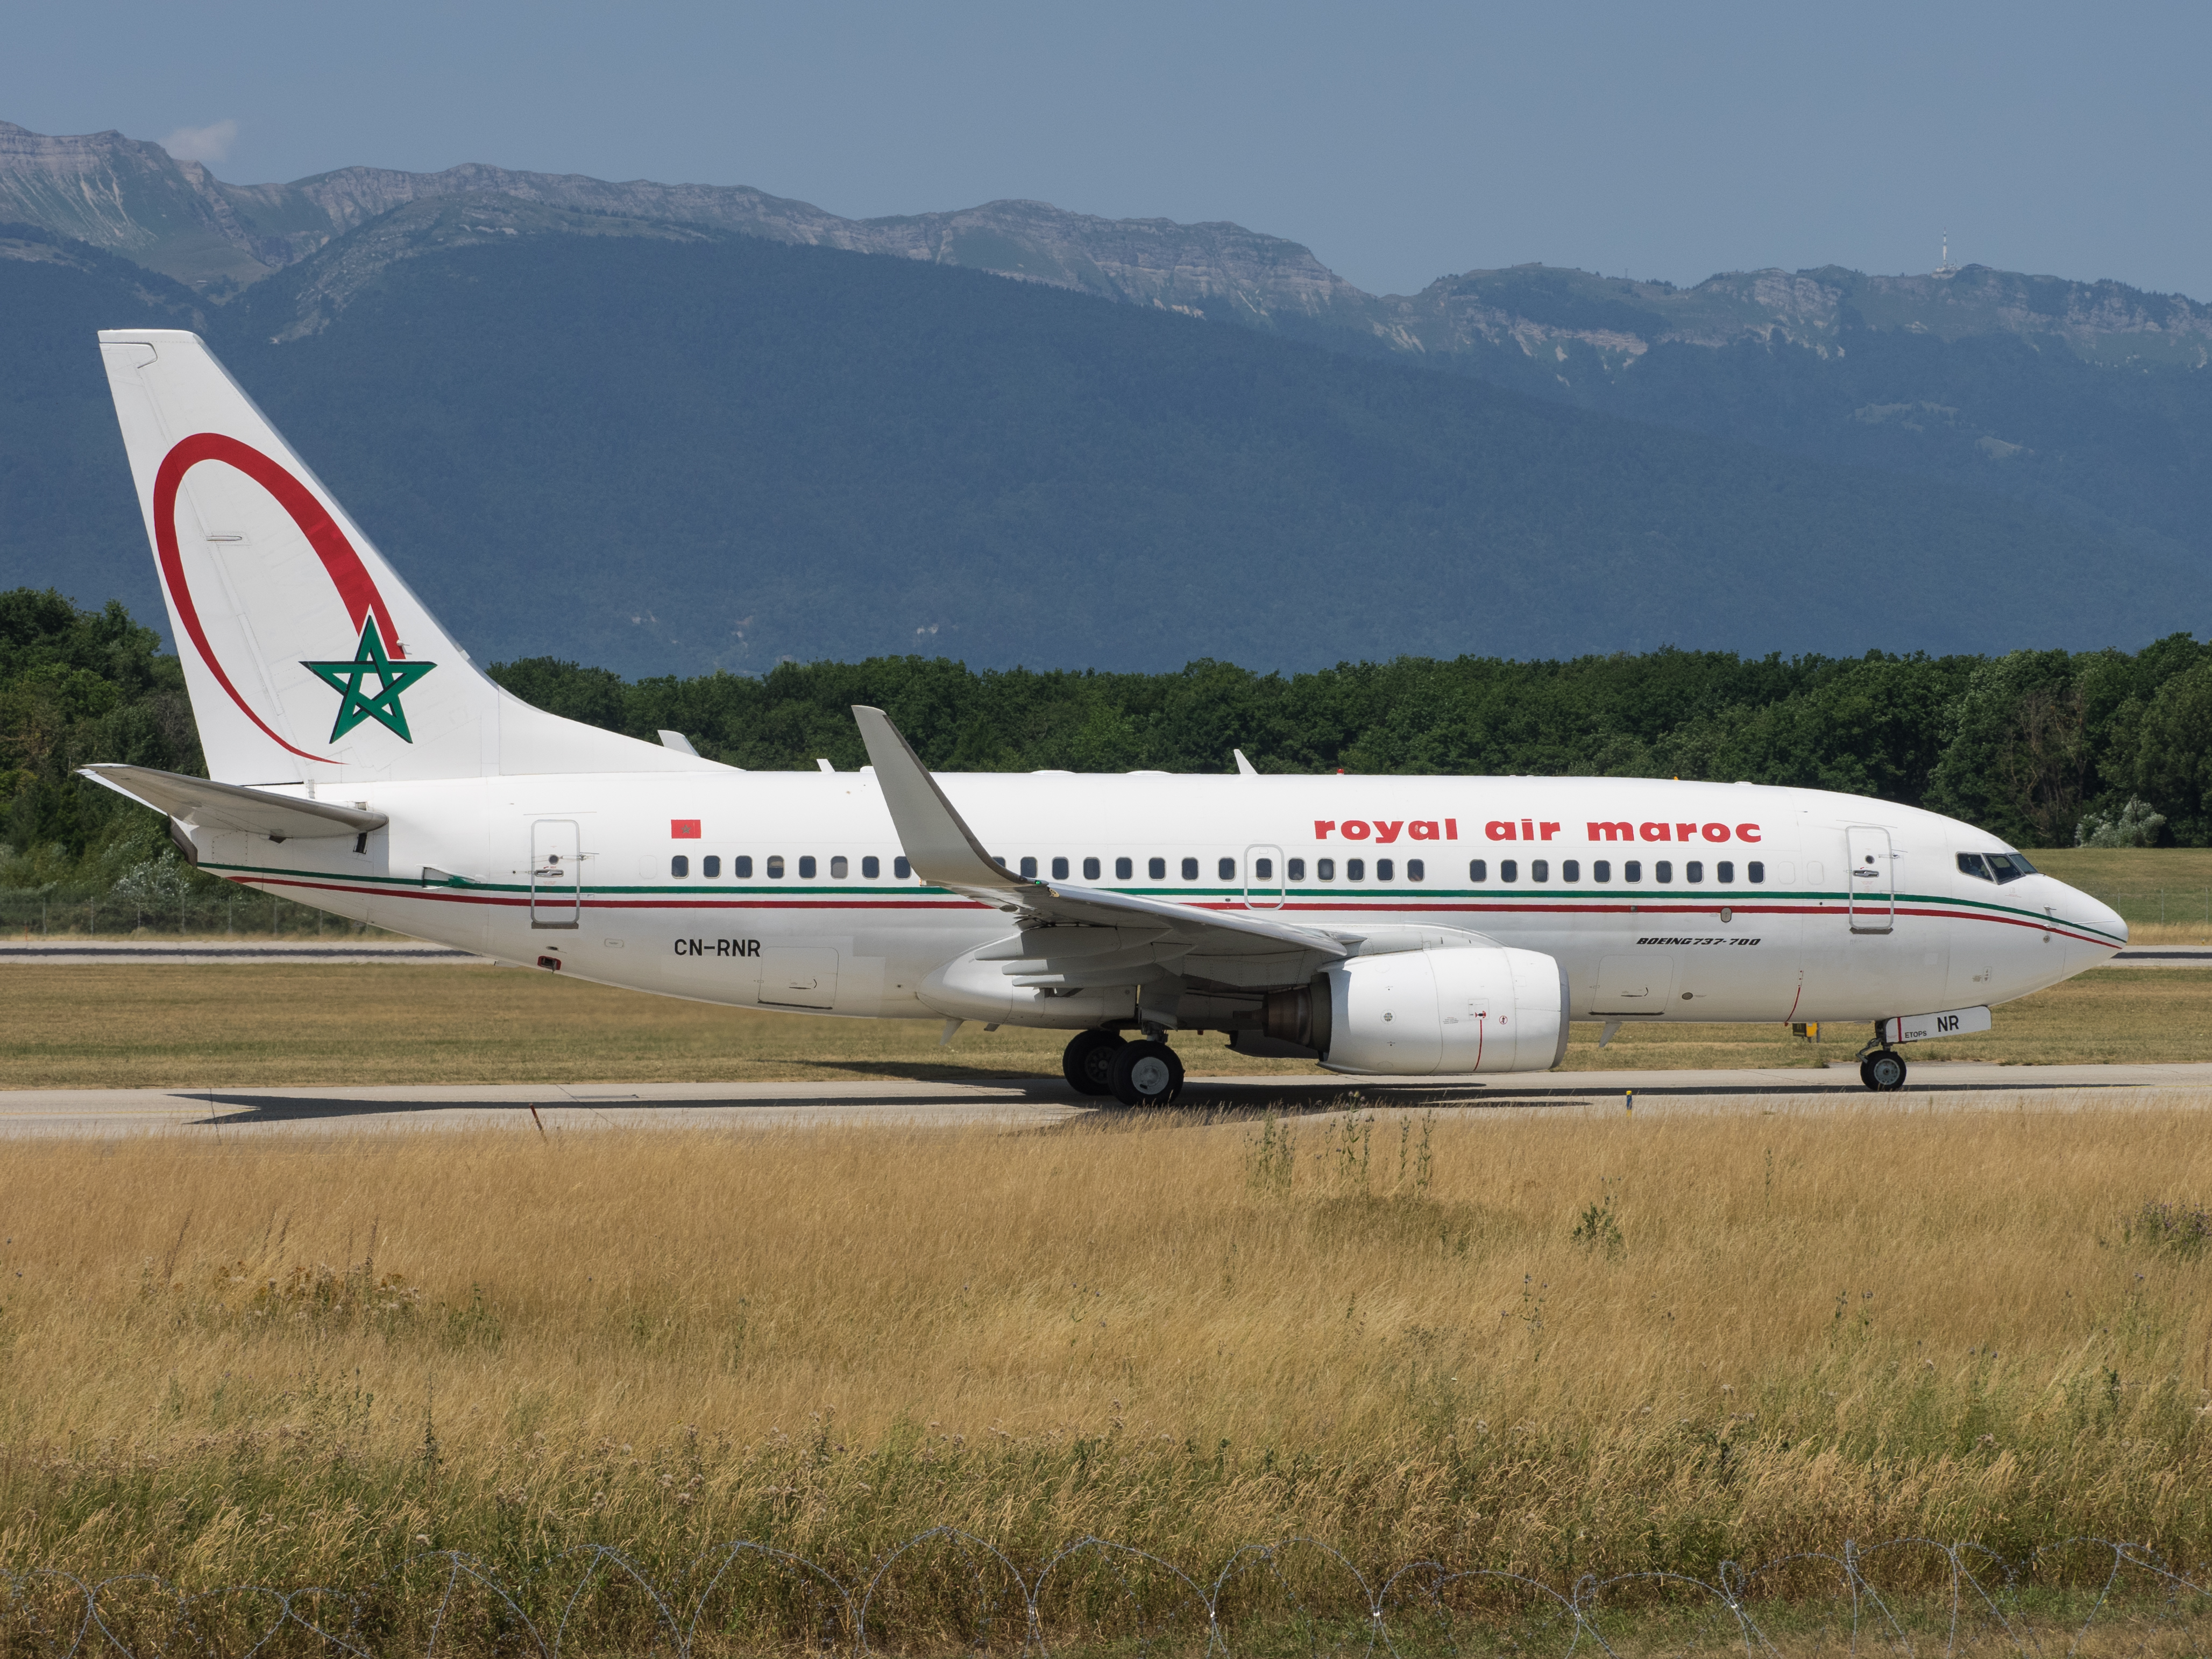 Bildresultat för royal air maroc boeing 787